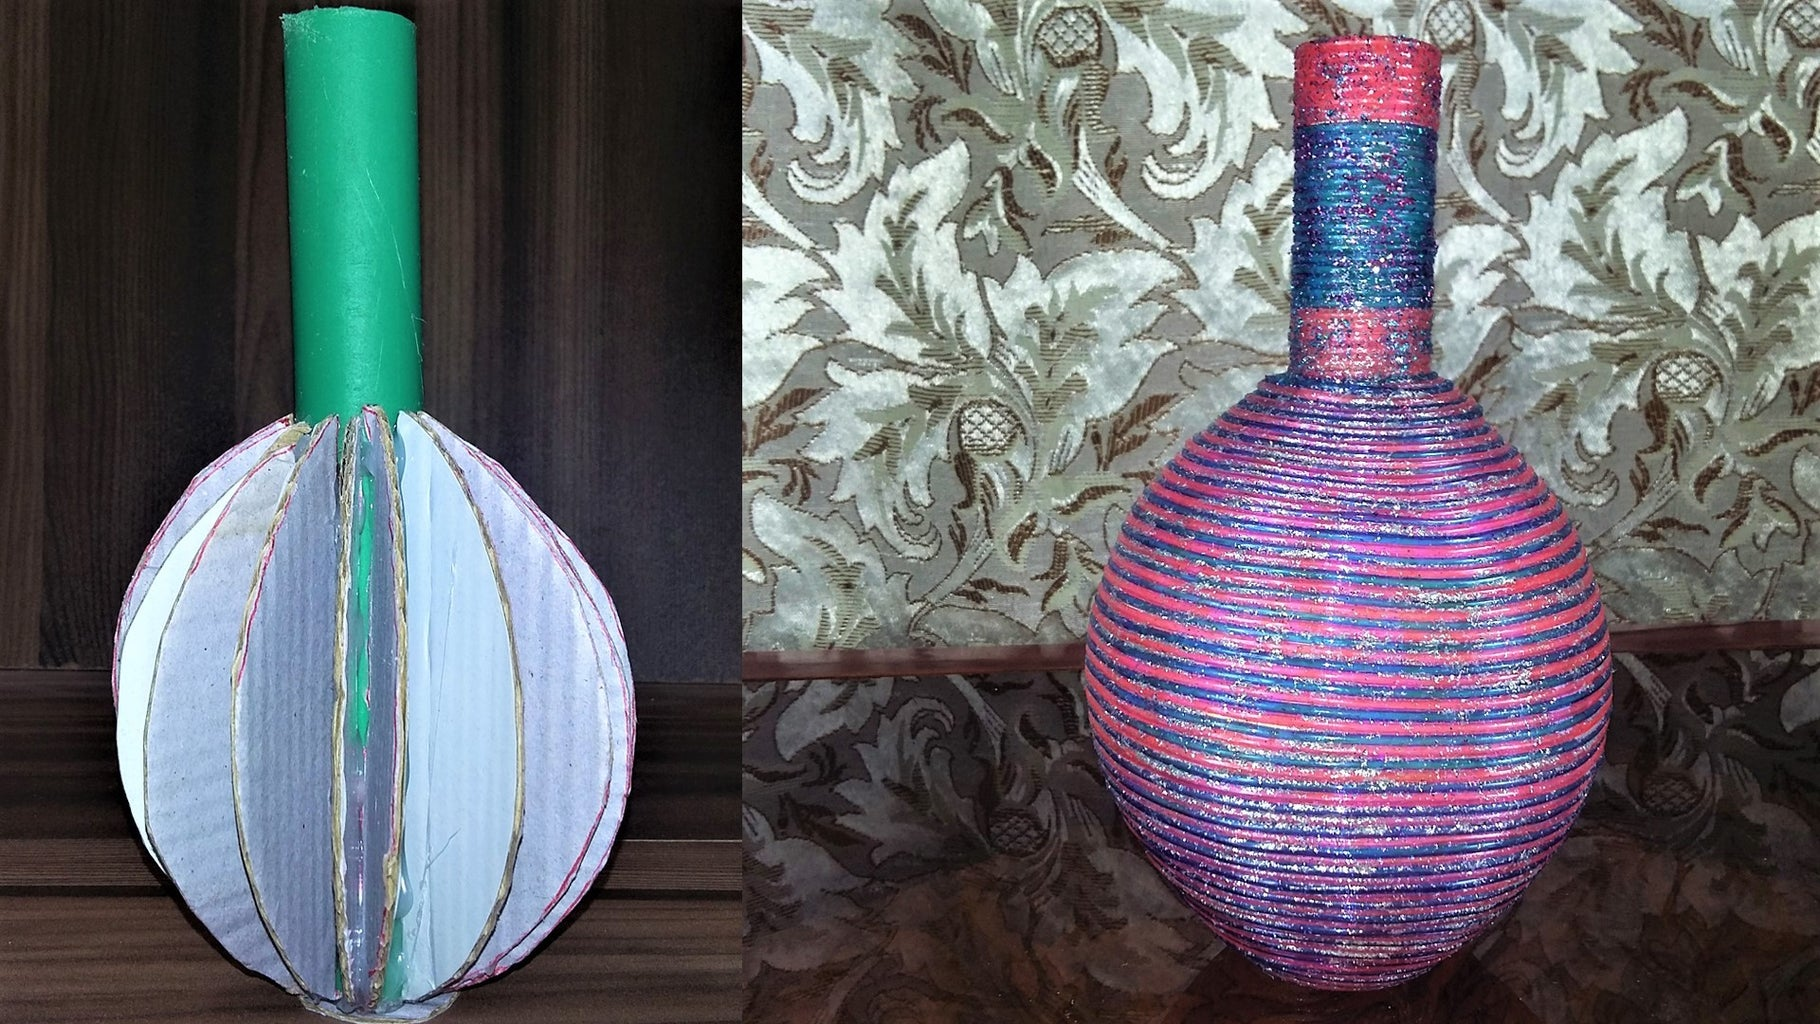 How to Make Vase From PVC Pipe and Cardboard